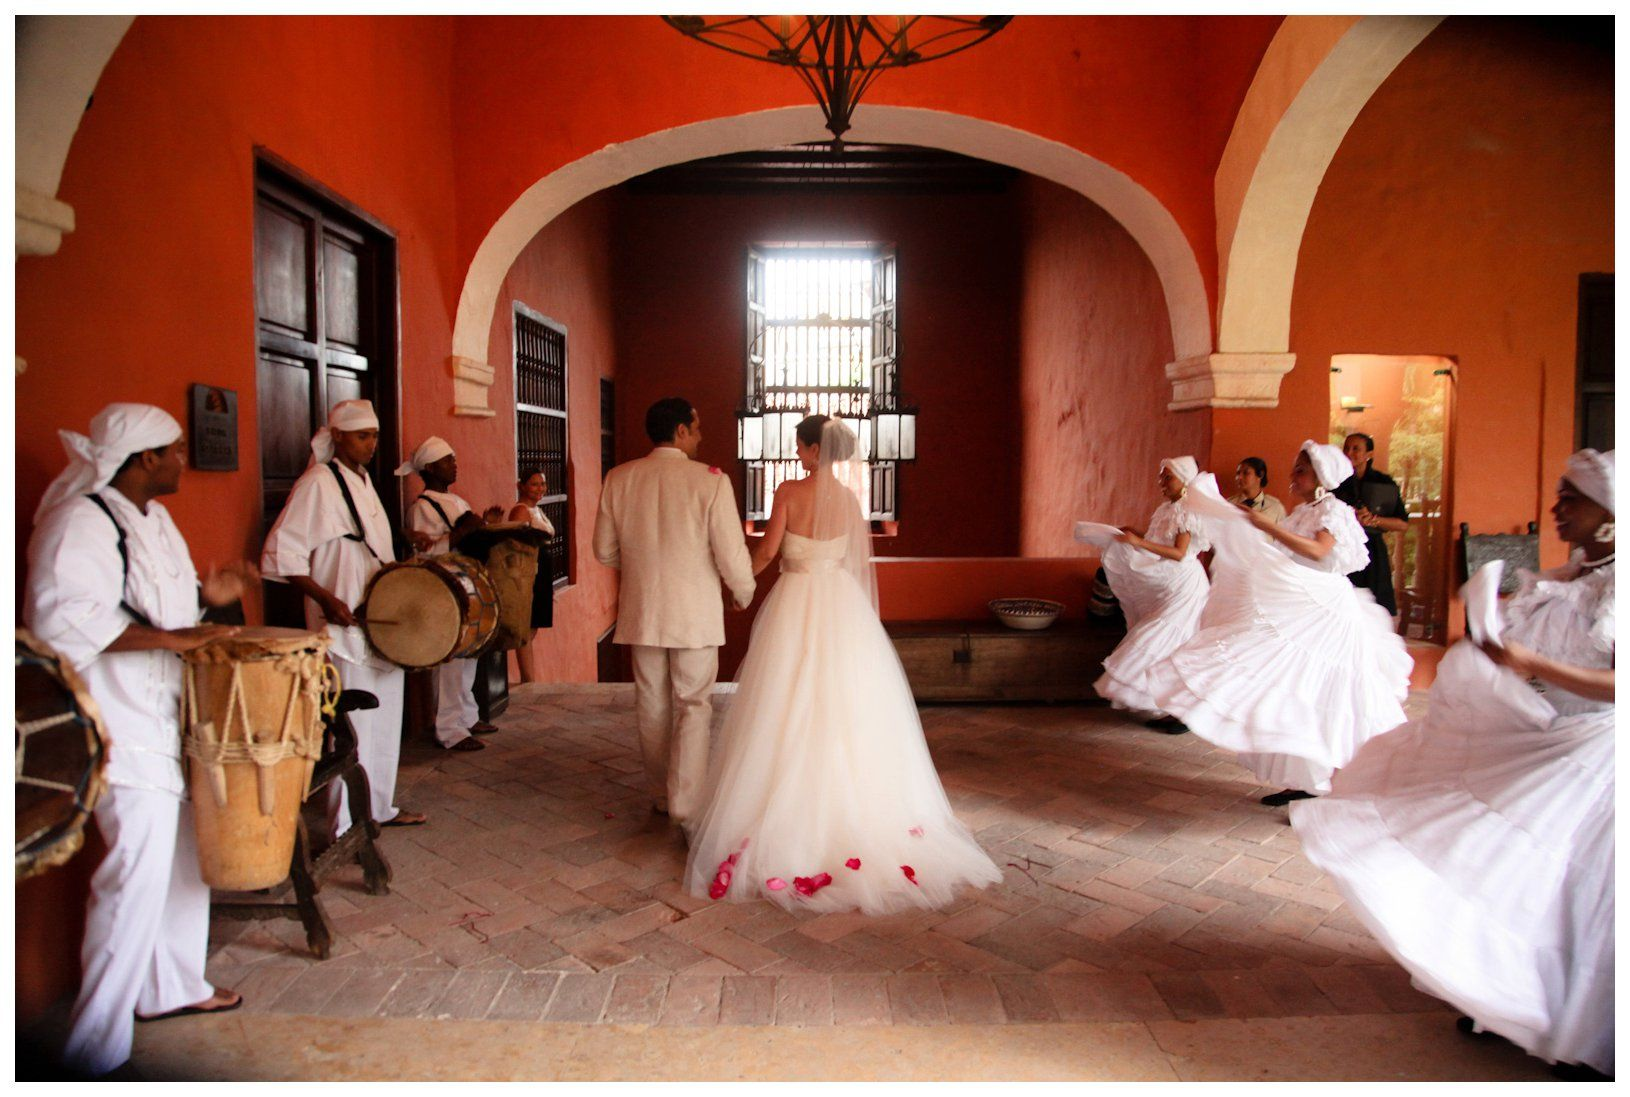 Ium obsessed with this colombian wedding wedding pinterest